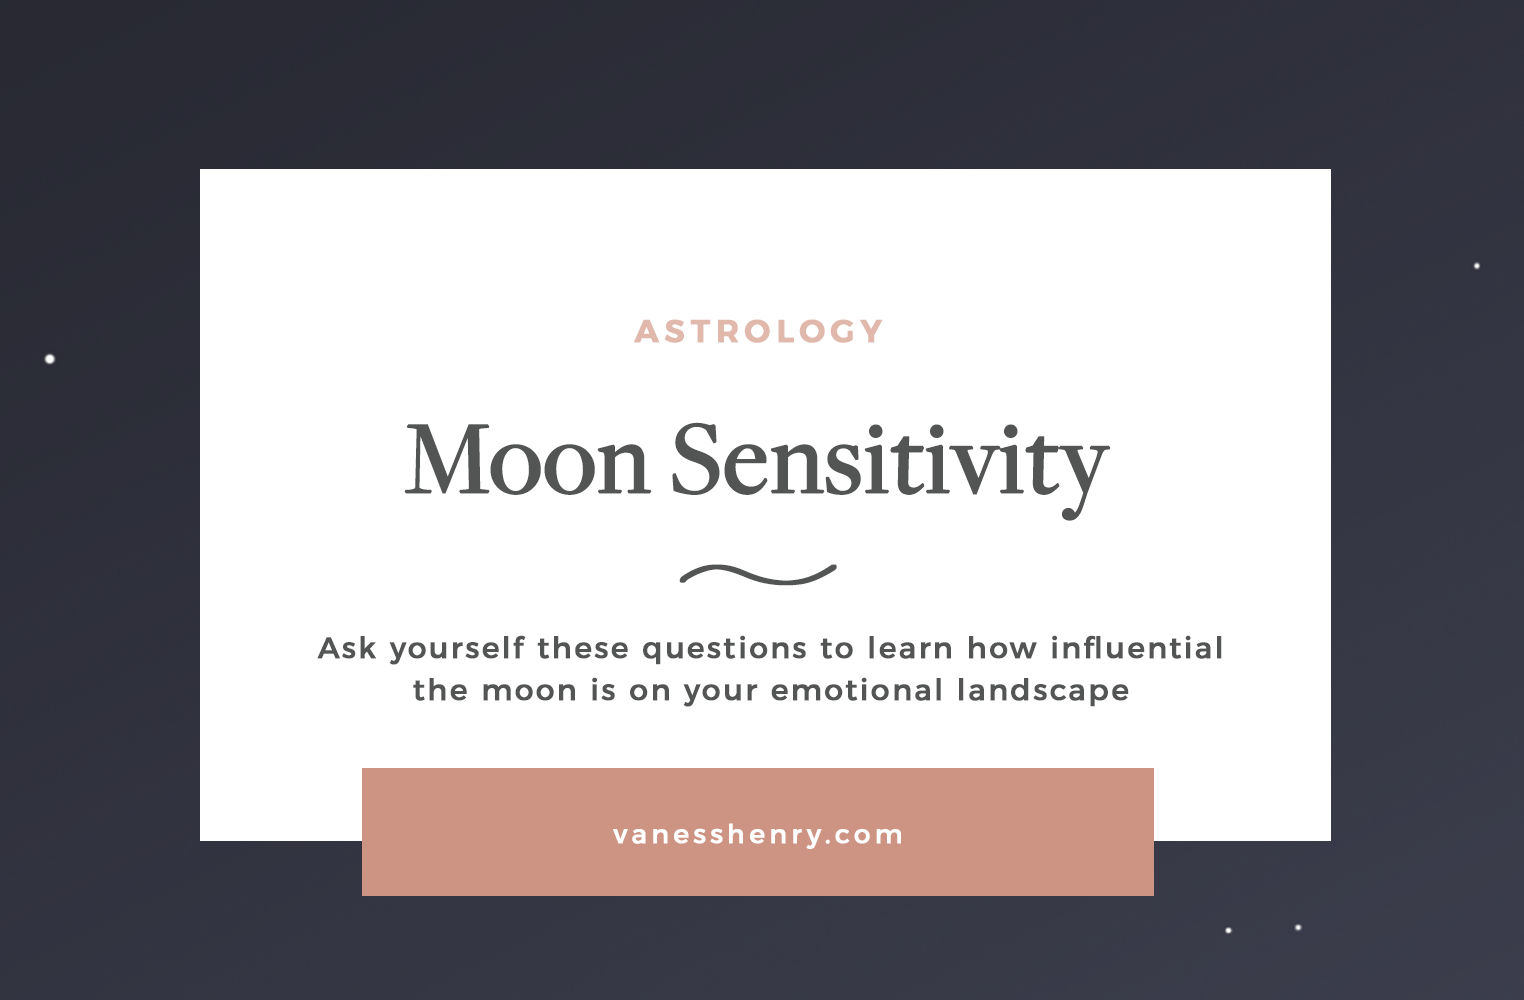 Are you Moon Sensitive? | Astrology, Vaness henry